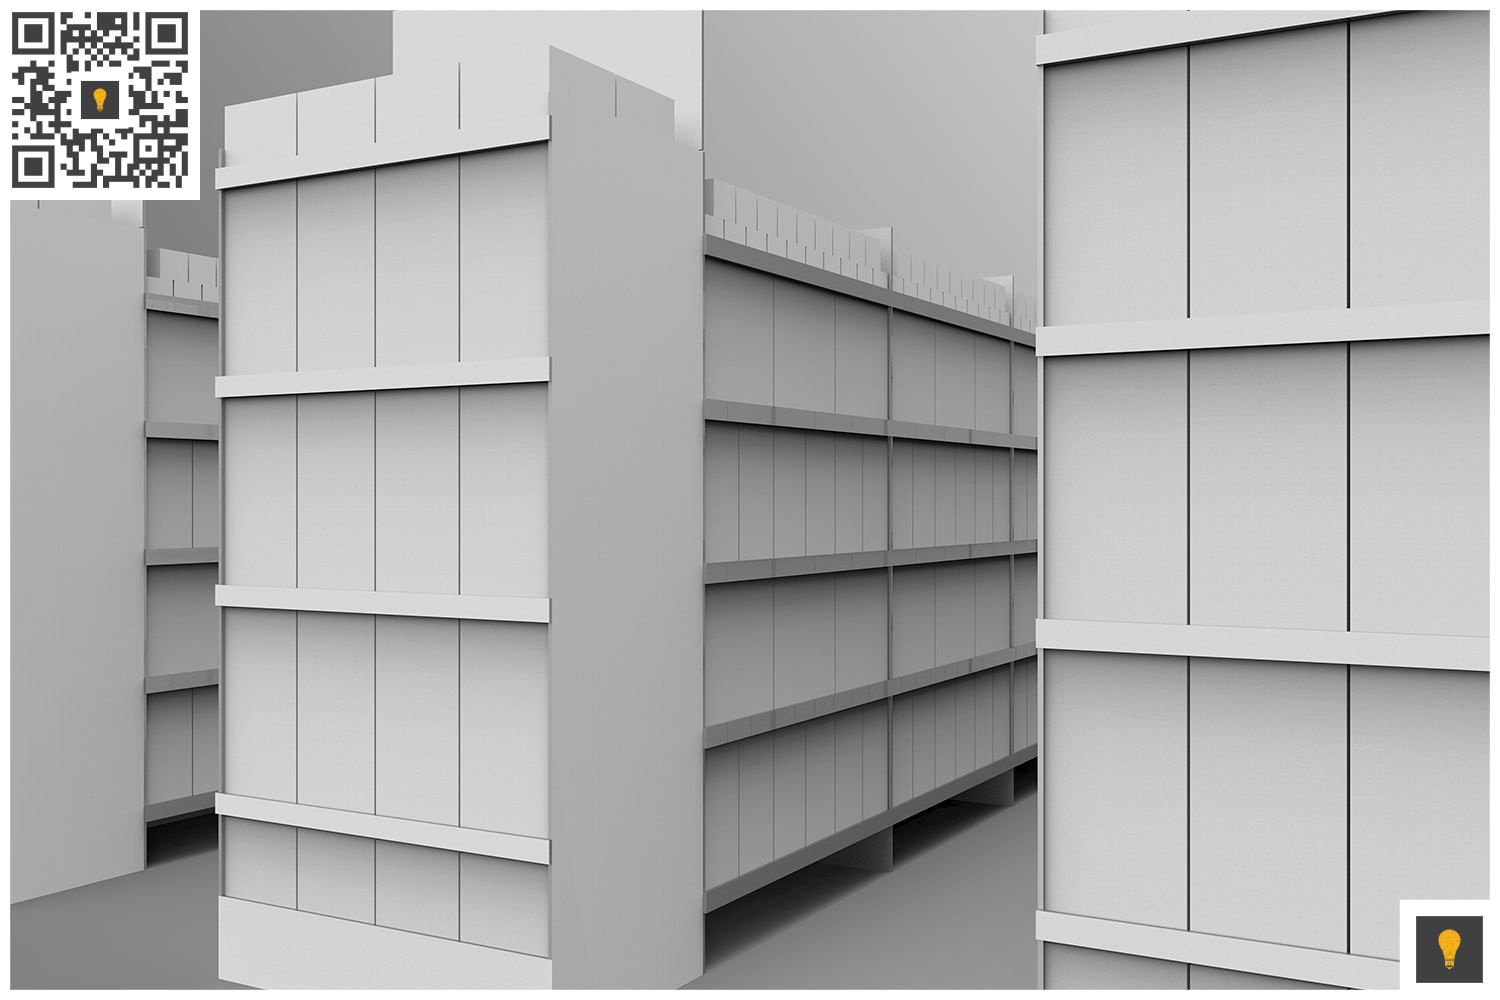 Aisle with Gondola Store 3D Render example image 10